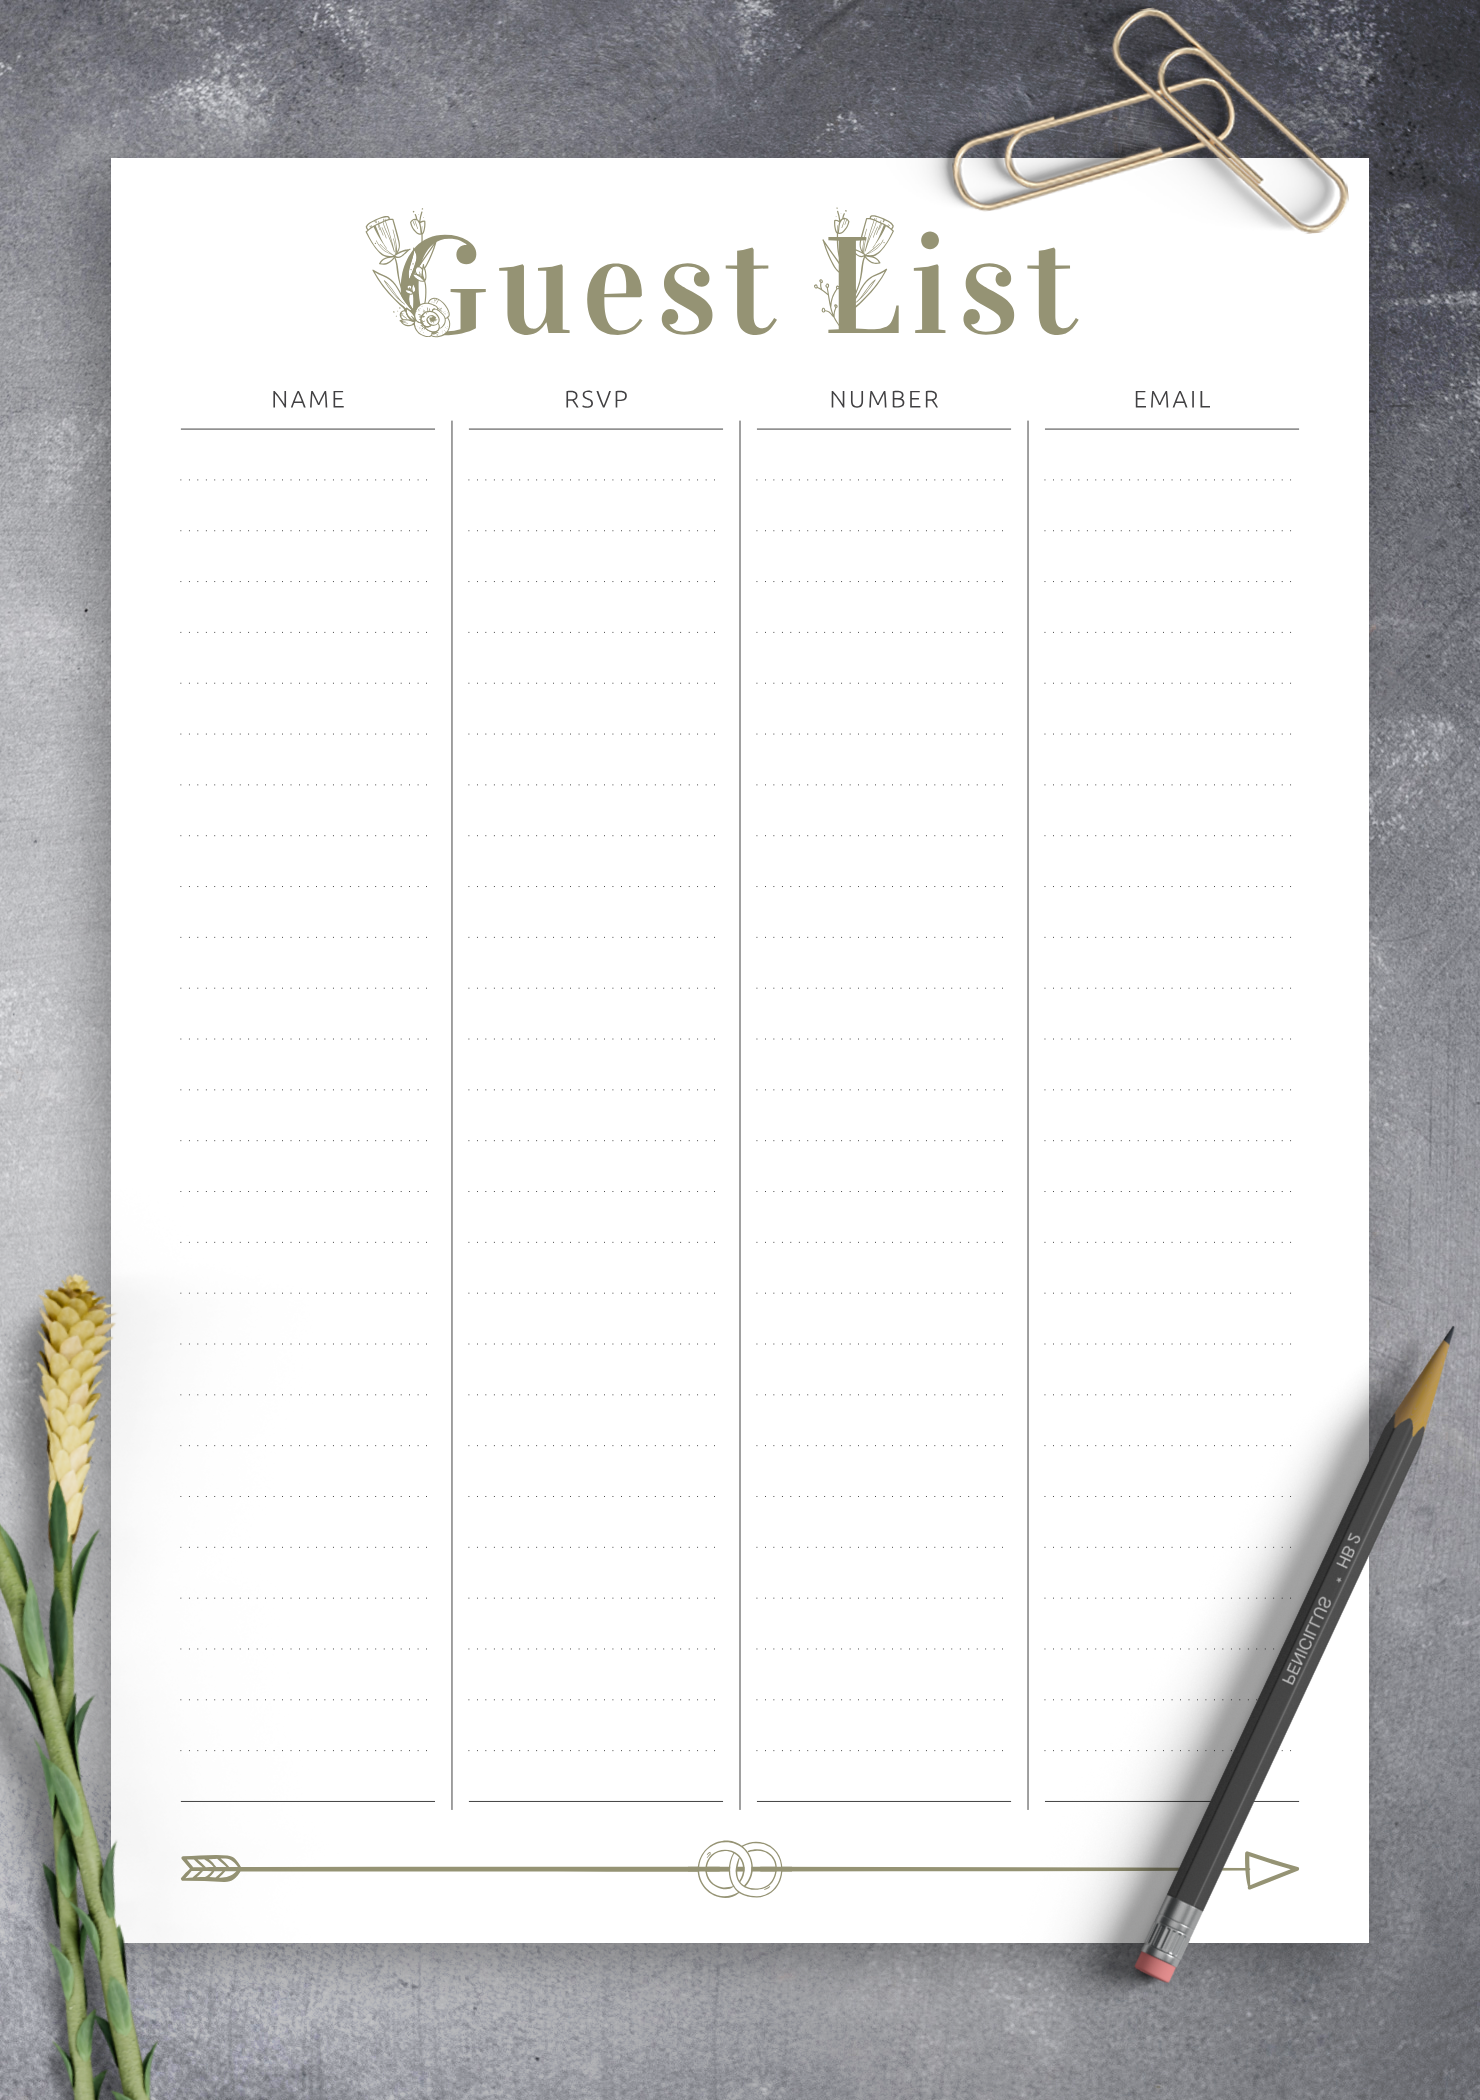 image regarding Arrow Template Printable called Absolutely free Printable Marriage Visitor Record - Amour Arrow PDF Obtain